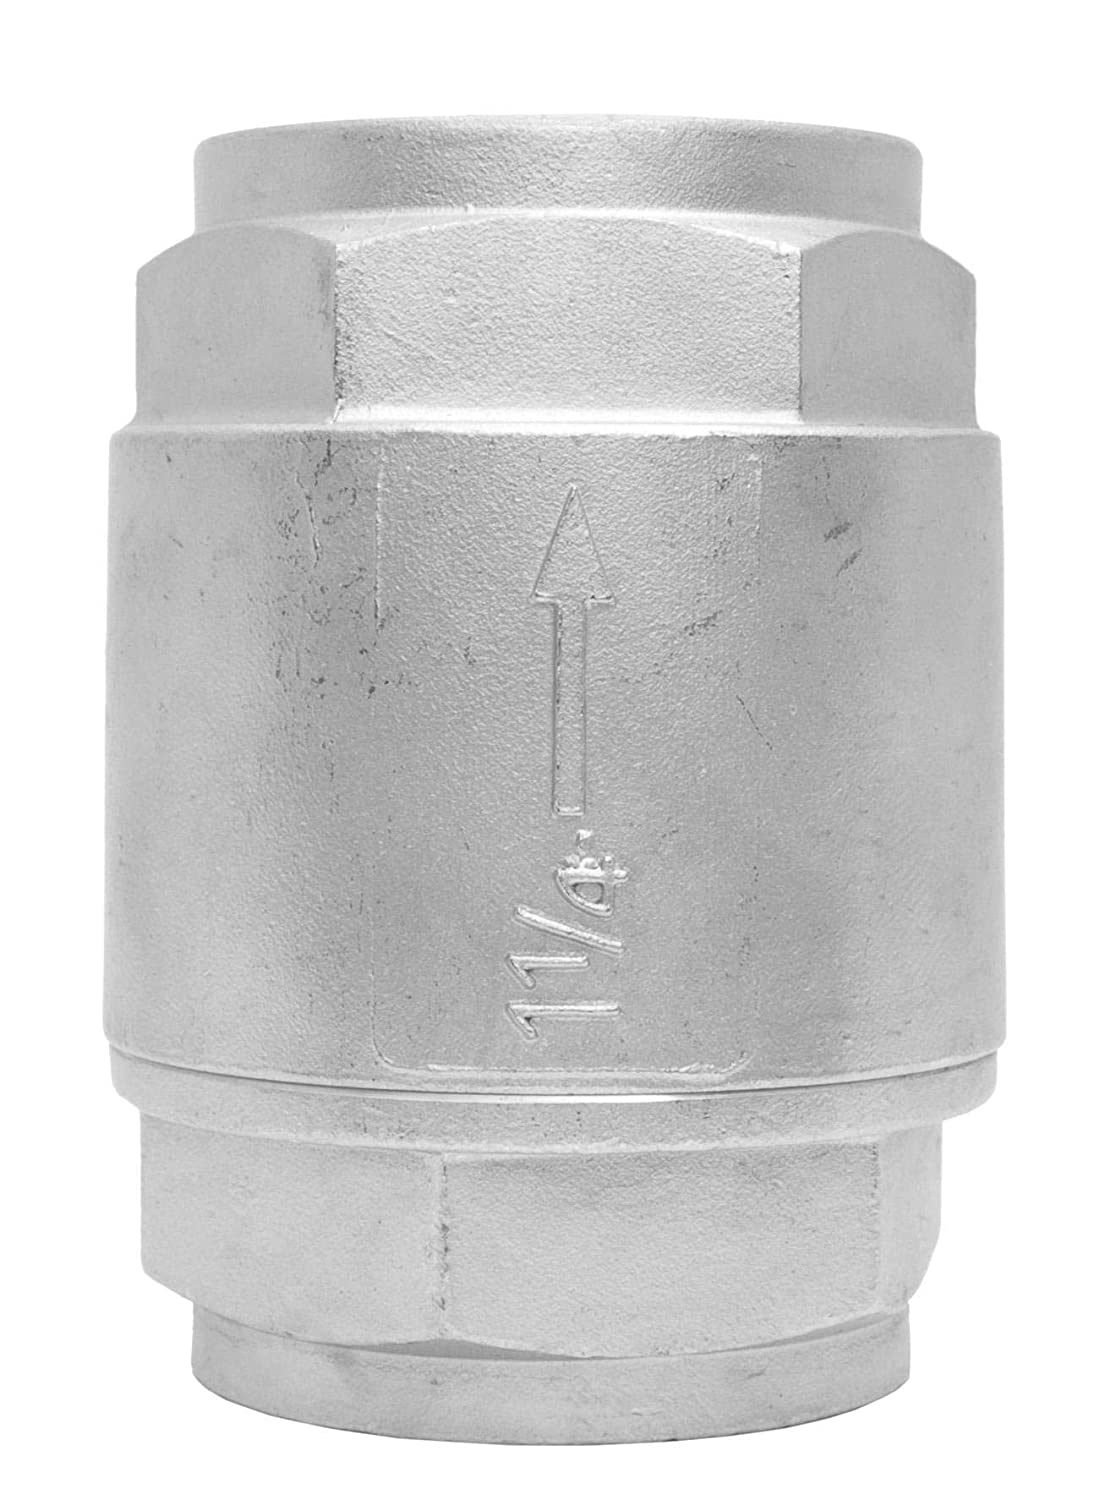 DuraChoice Stainless Steel 316 in-Line 150 Spring price Valve Check - Quantity limited